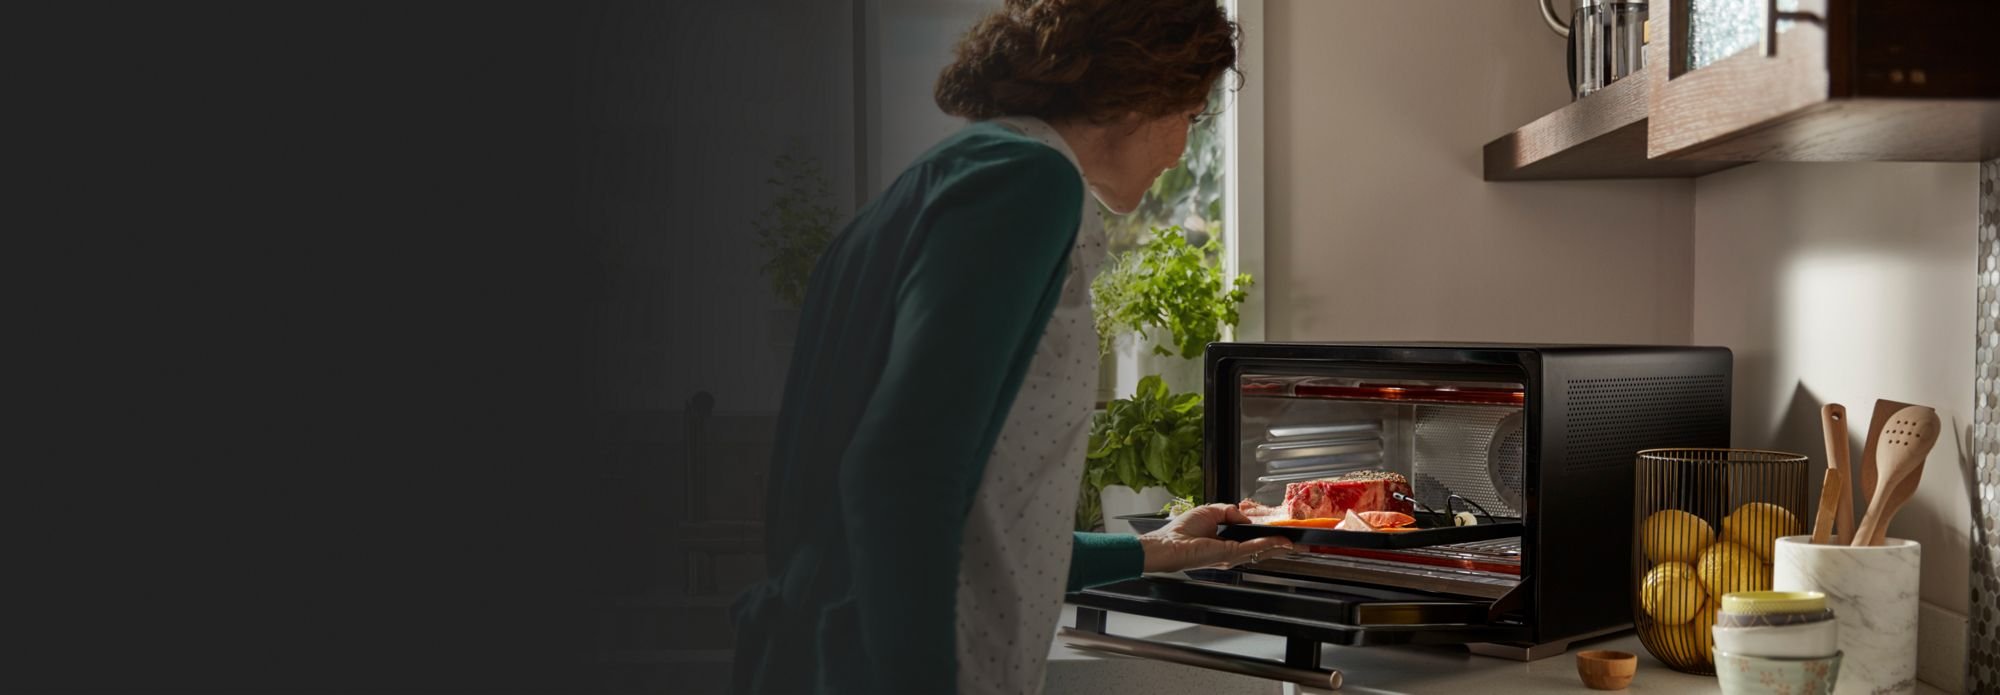 Whirlpool® WLabs™ Smart Oven.